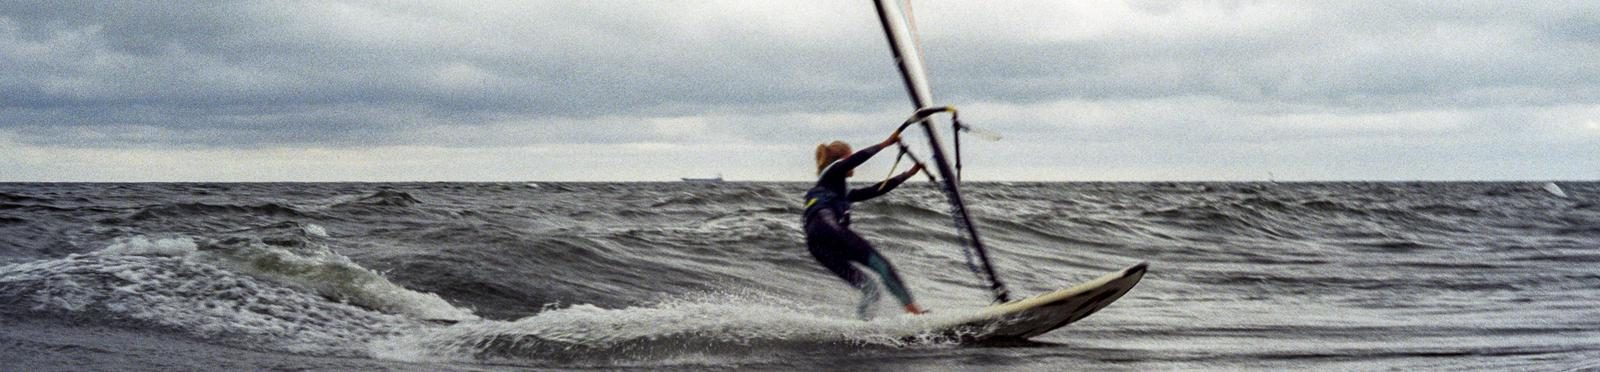 Girl on the windsurf in the middle of the sea.